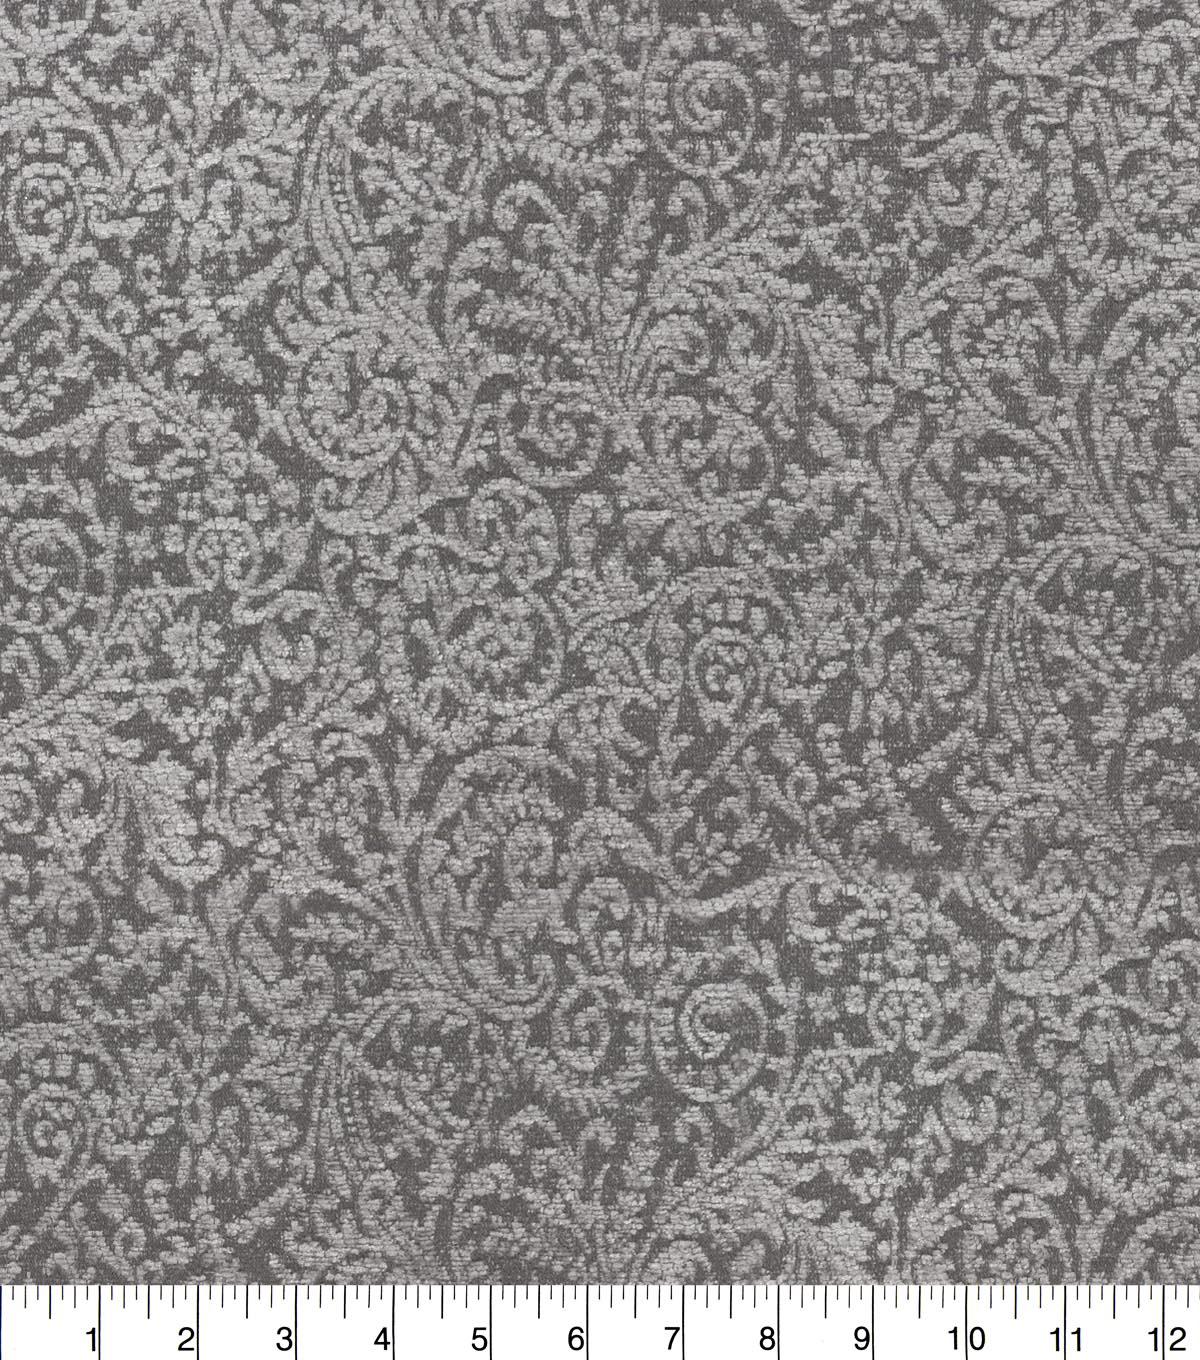 Home Decor 8\u0022x8\u0022 Fabric Swatch-Waverly New Stetson Thunder